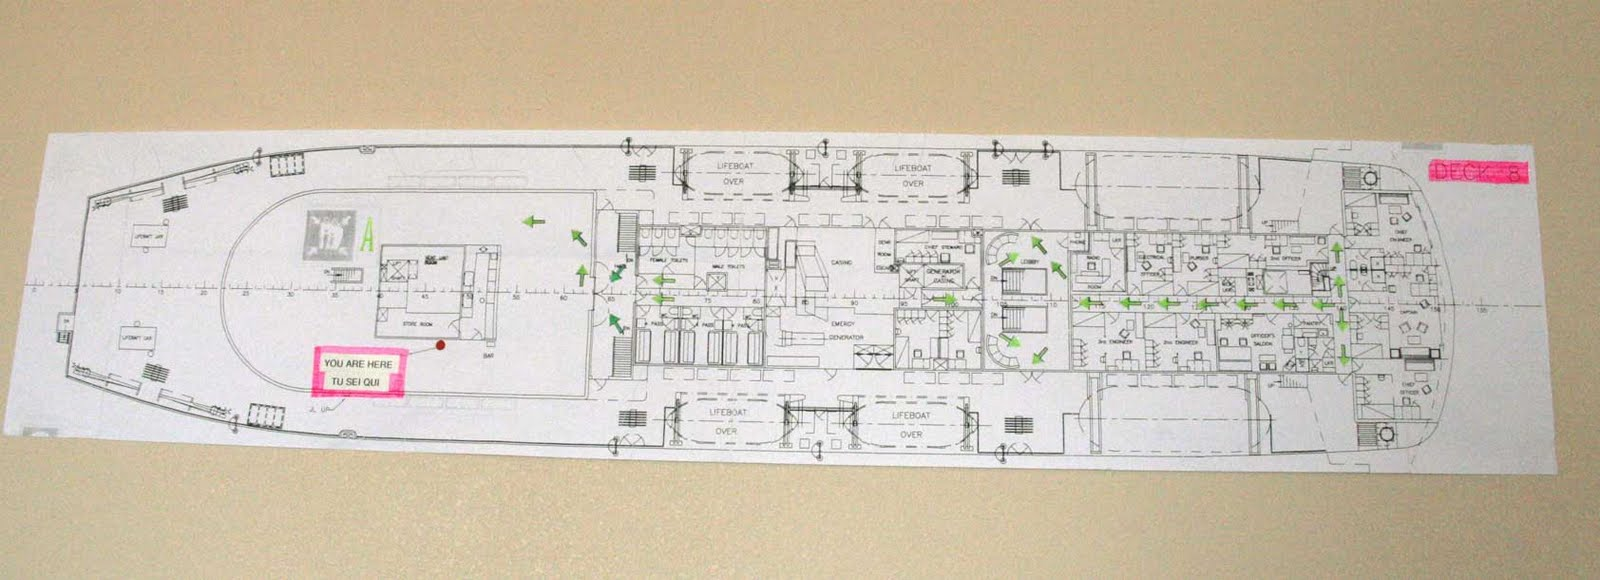 Britannia Deck Plan Plans And Designs Cruise Ship